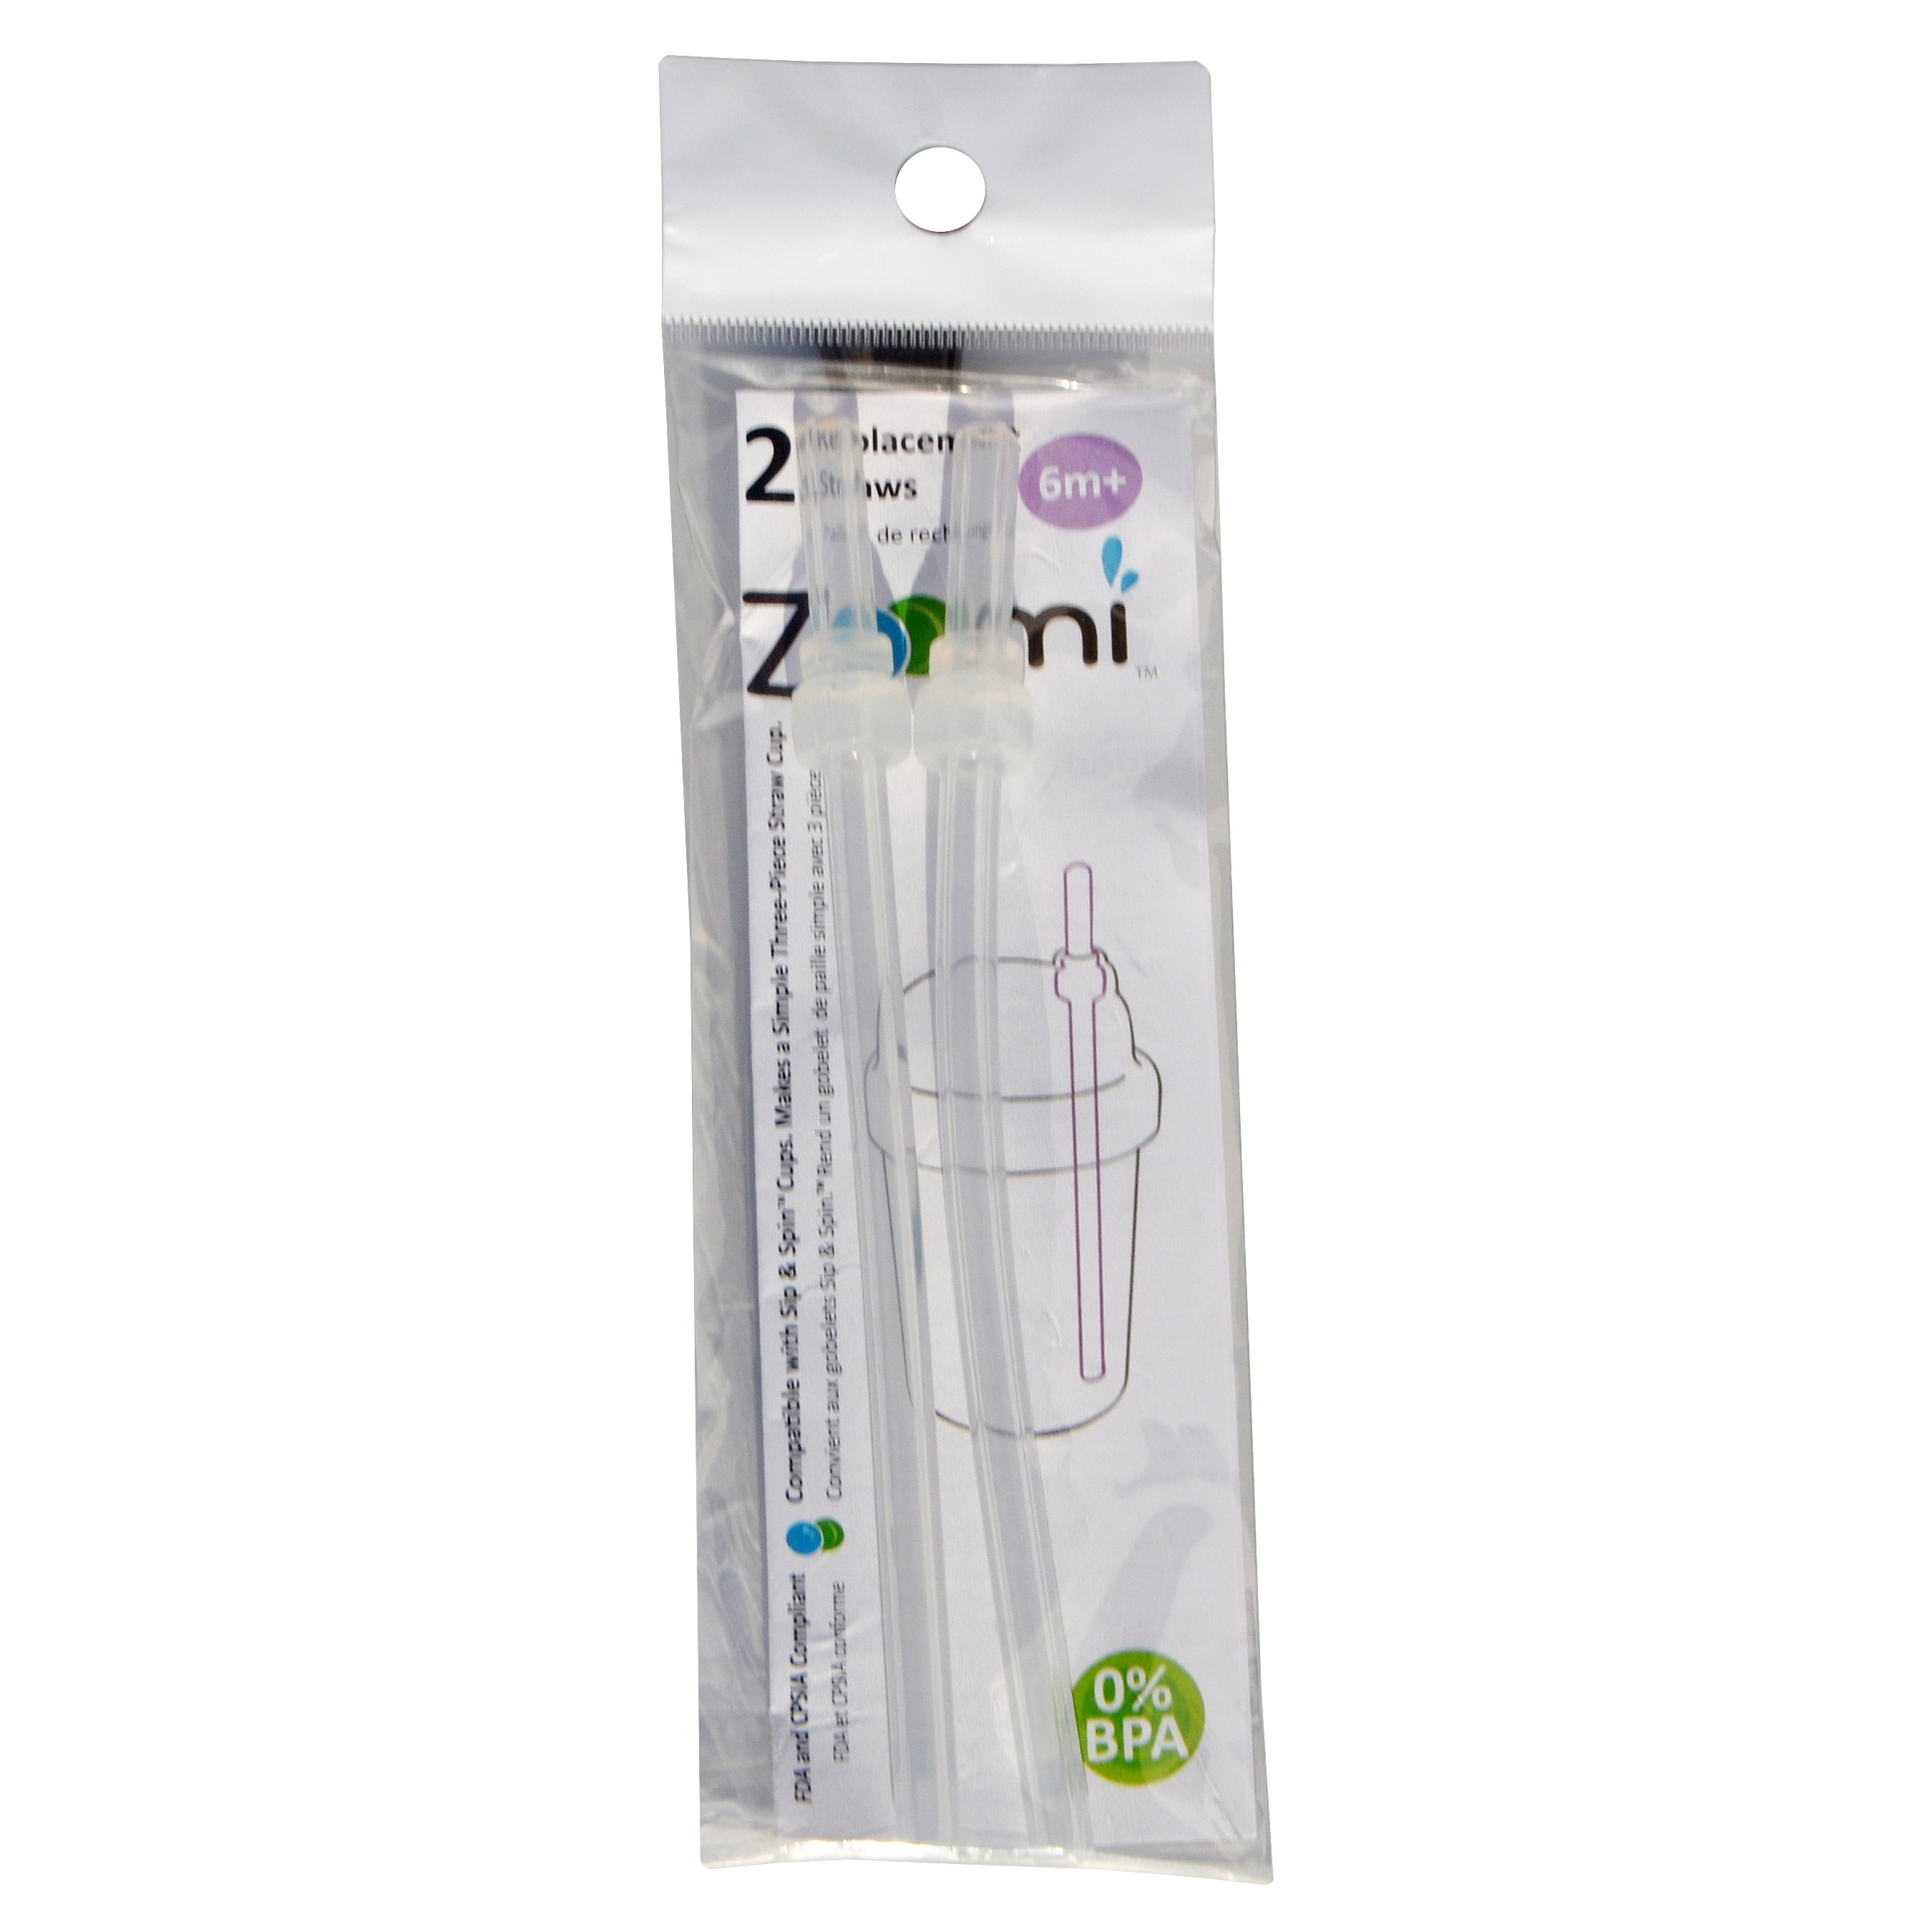 Replacement straw set for Zoomi straw cup - Package of 2